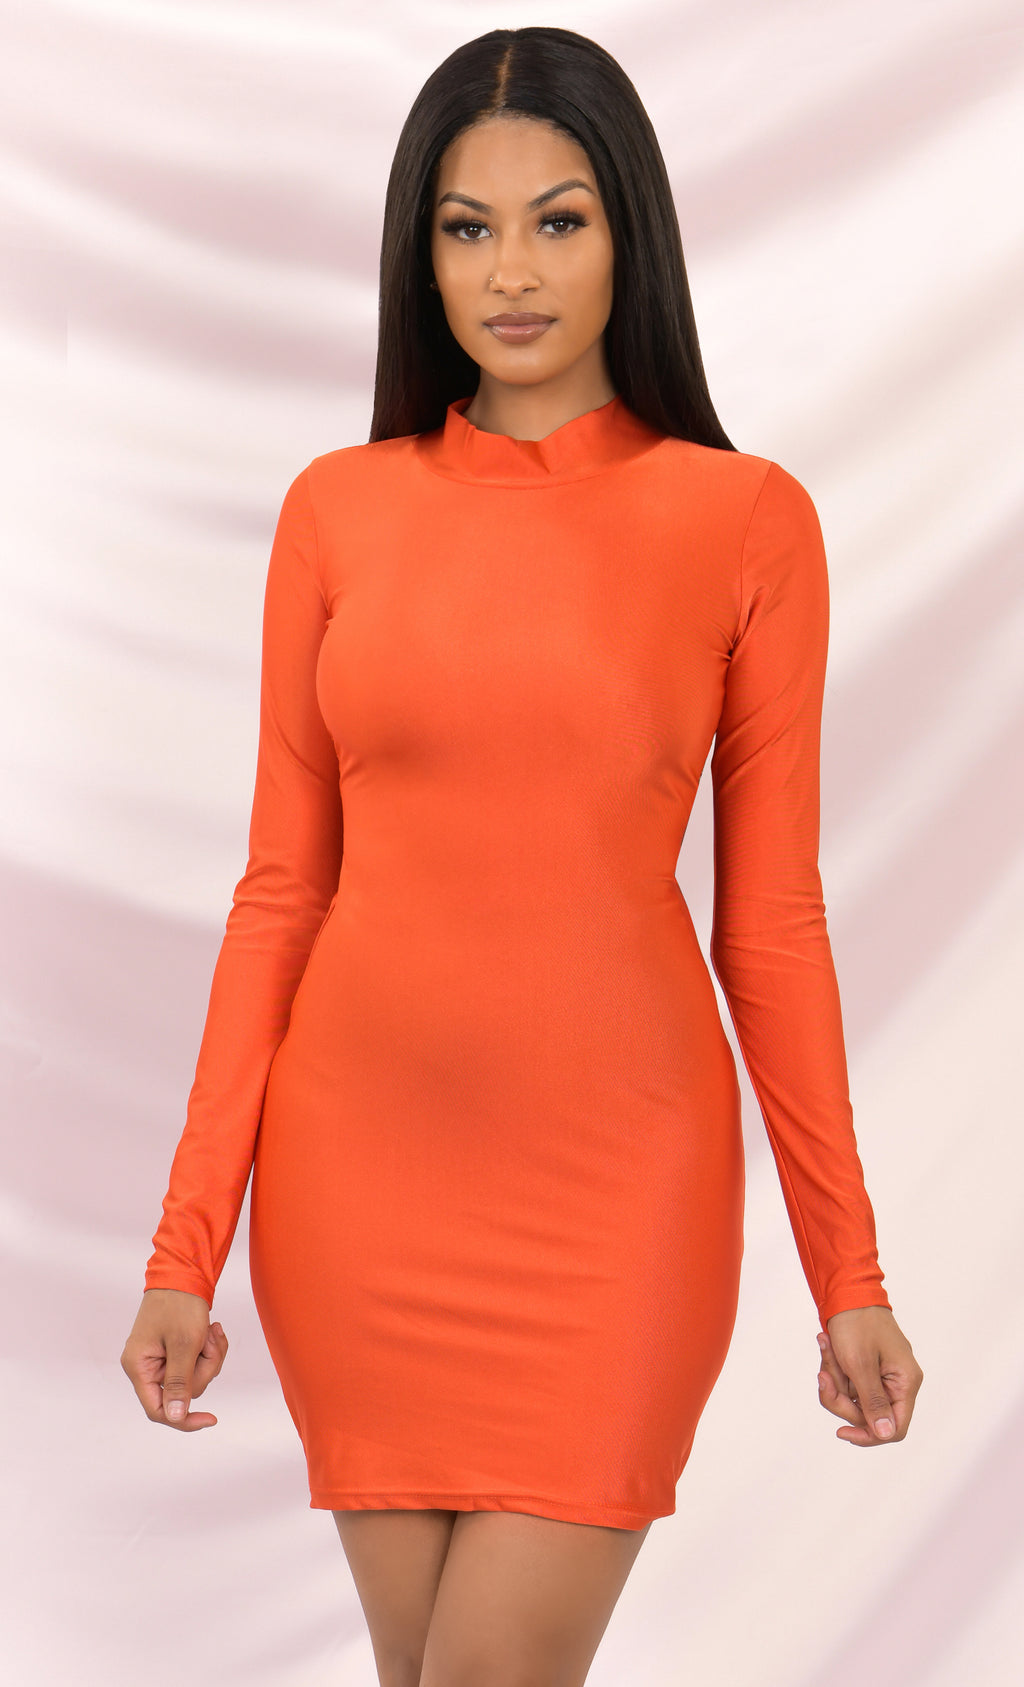 Boss Babe Orange Long Sleeve Bodycon Mock Neck Ruched Cut Out Tie Back Mini Dress - Inspired by Kylie Jenner